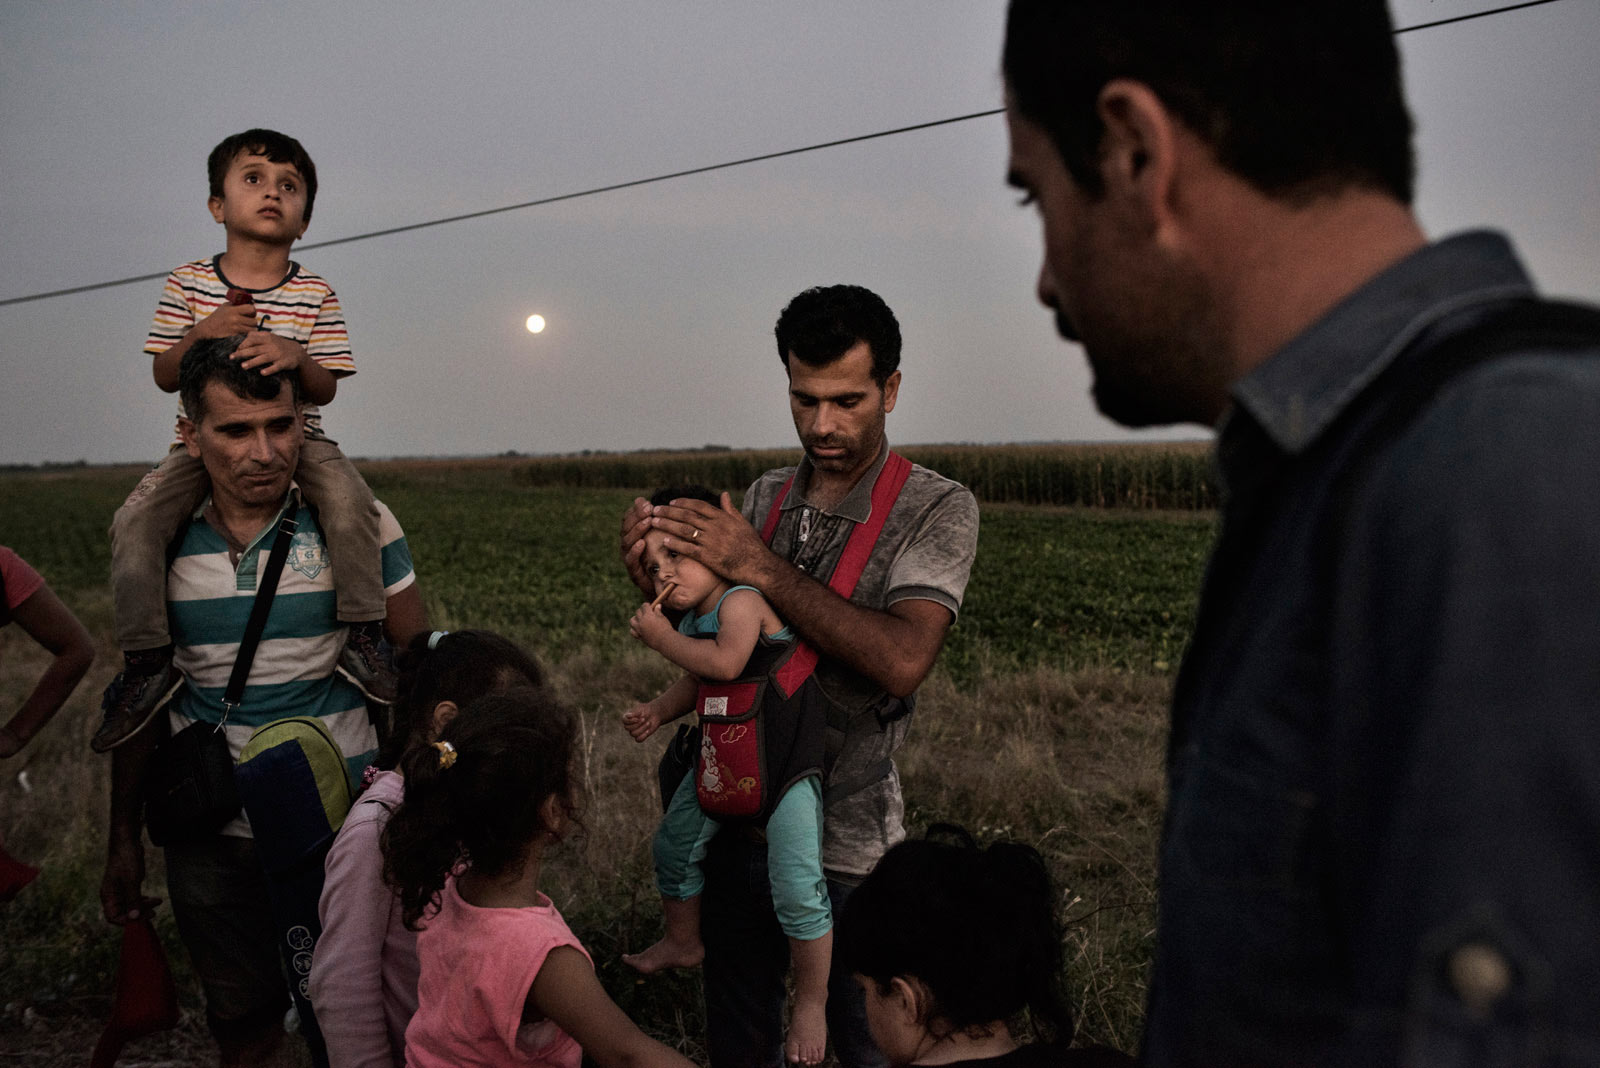 A Syrian family prepares to turn themselves into a Hungarian detention facility for migrants arriving in the European Union.                               Roszke, Hungary, Aug. 29, 2015.